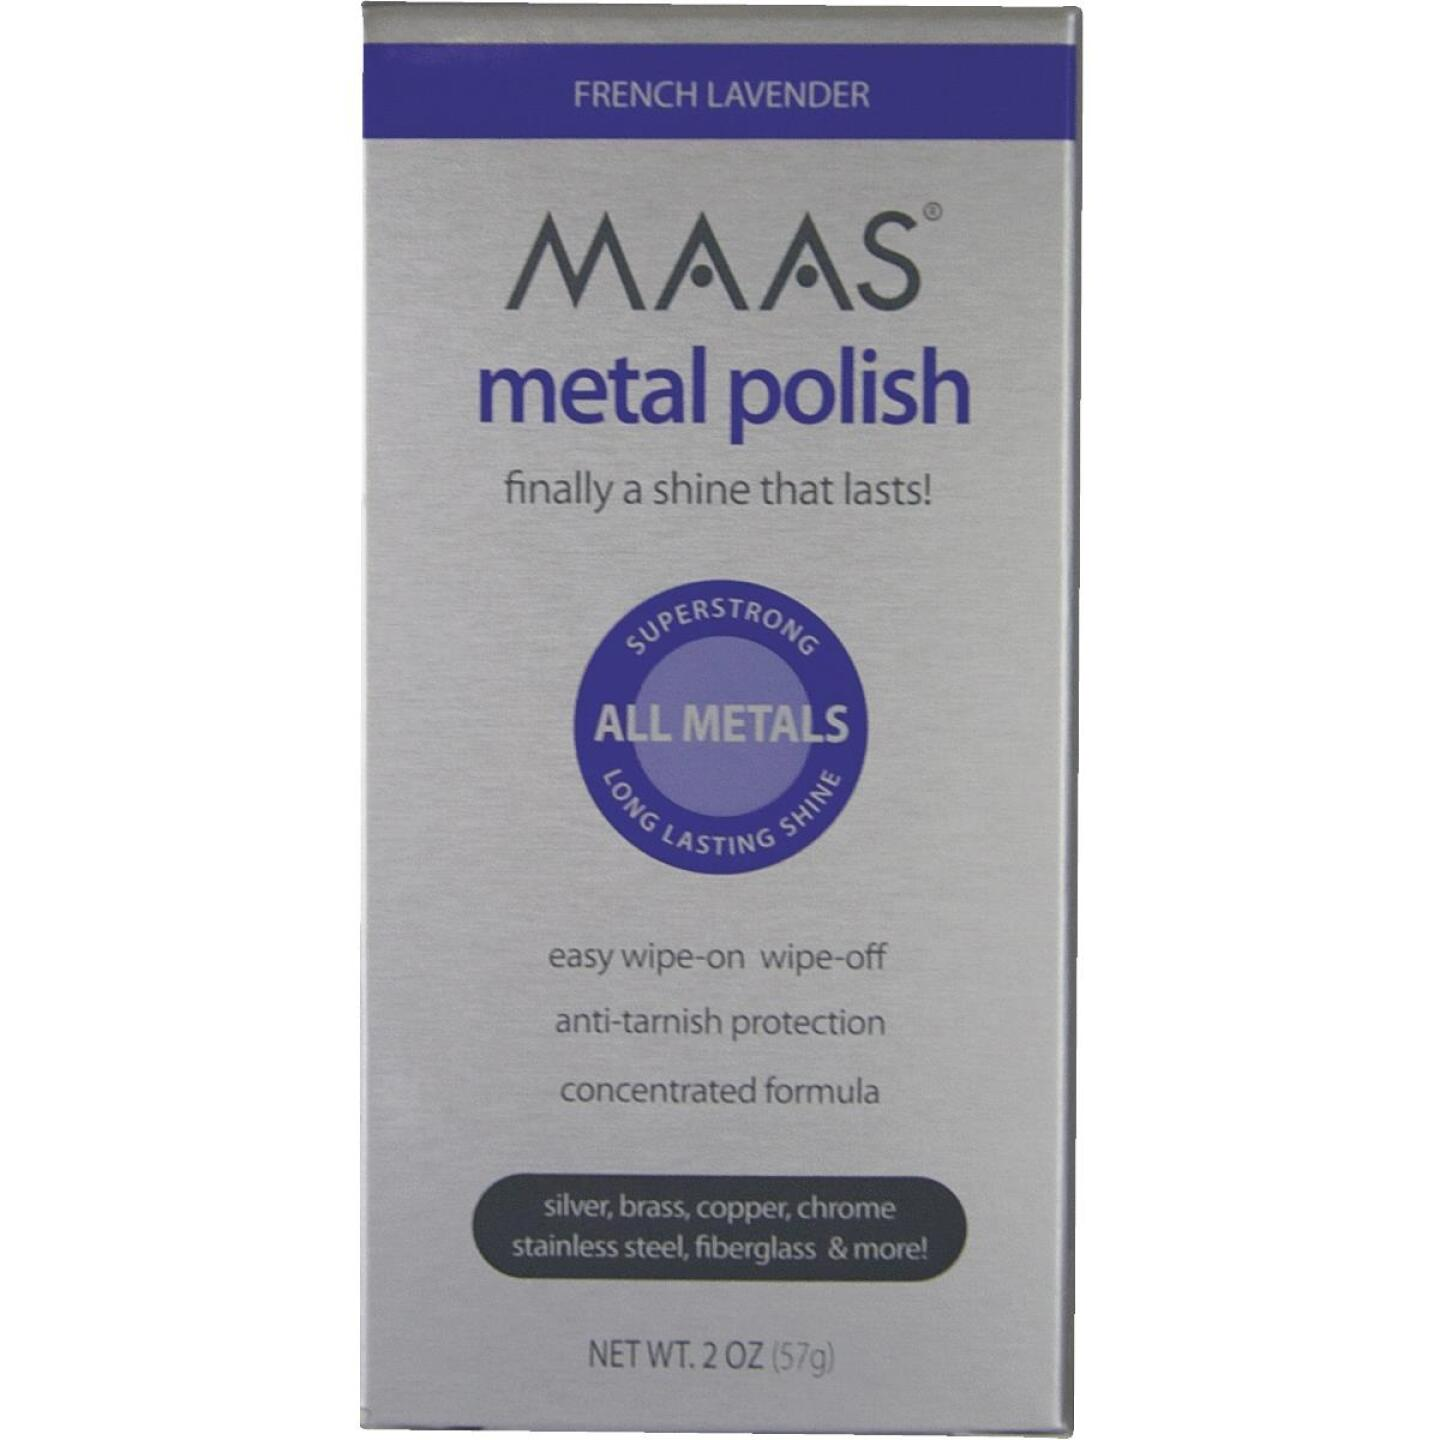 Maas 2 Oz. Polishing Creme For All Metals Image 2